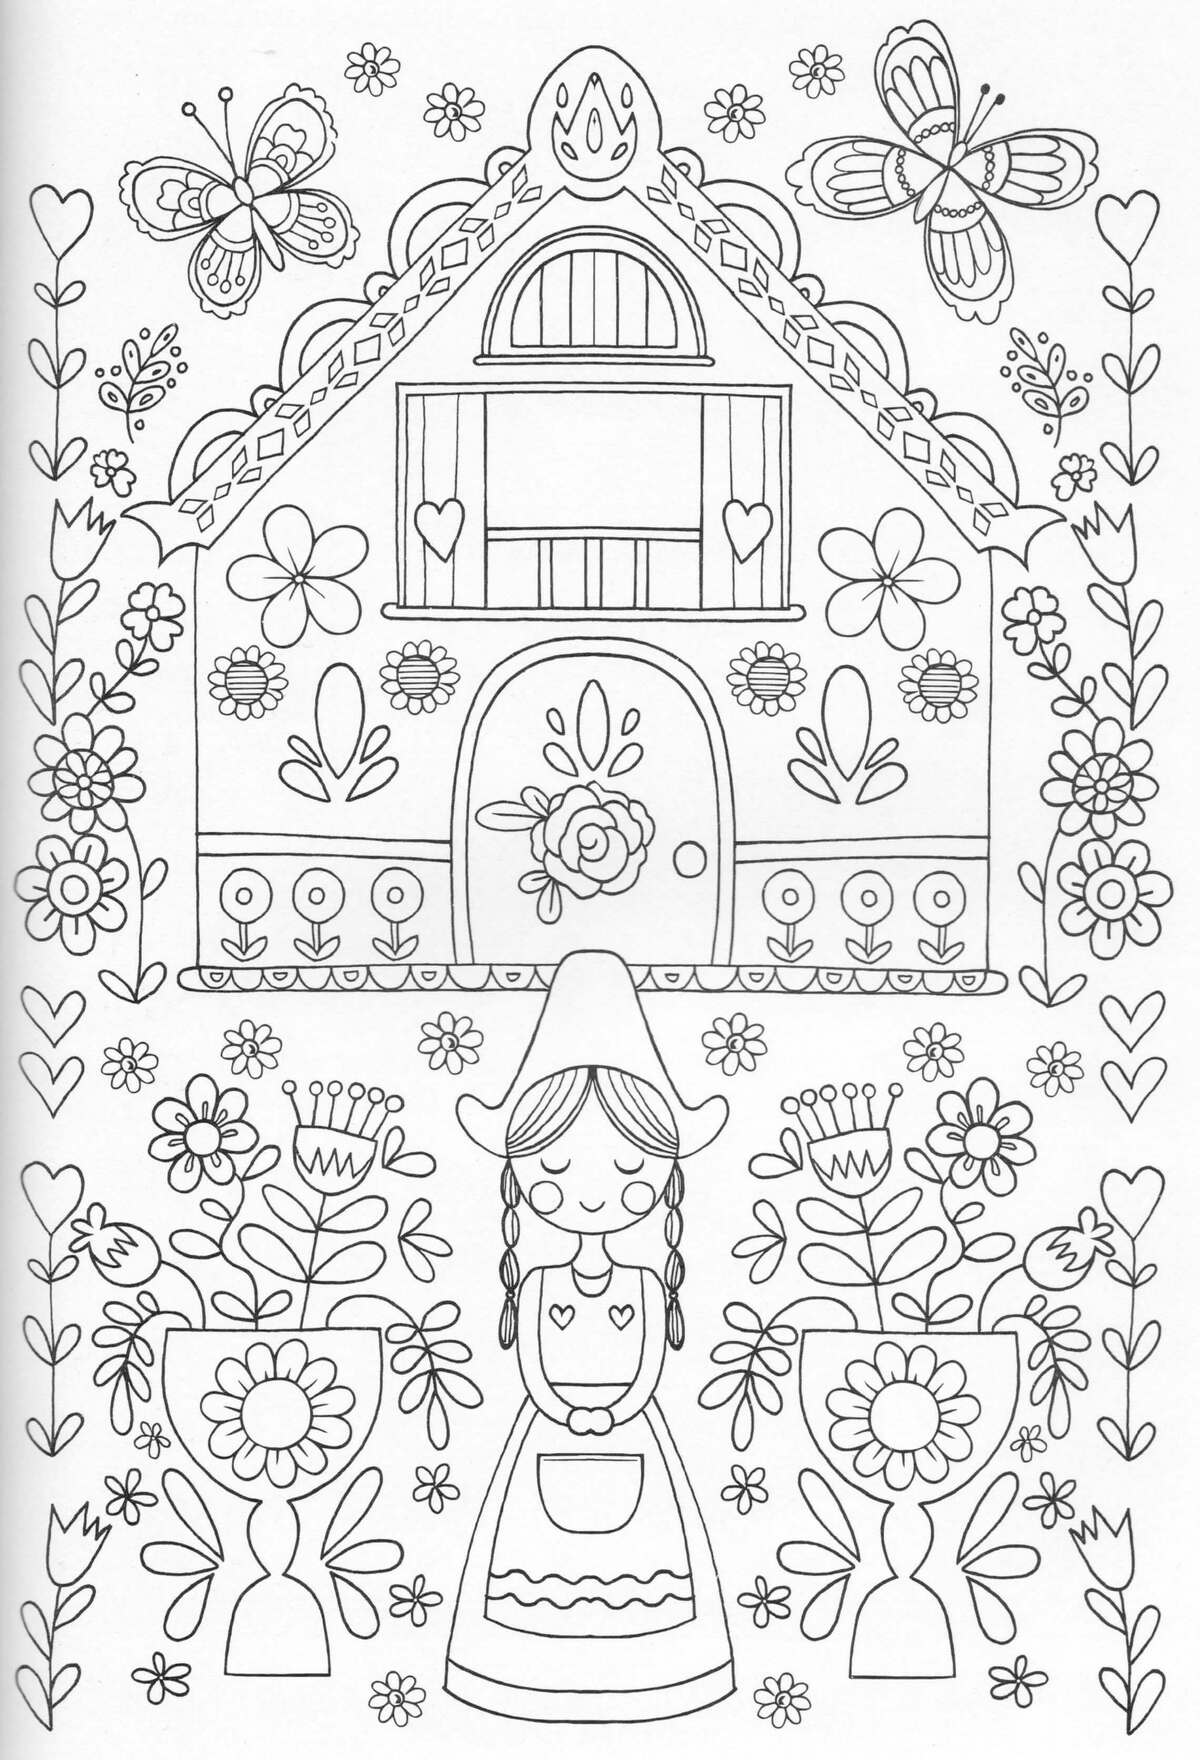 scandinavian-coloring-page